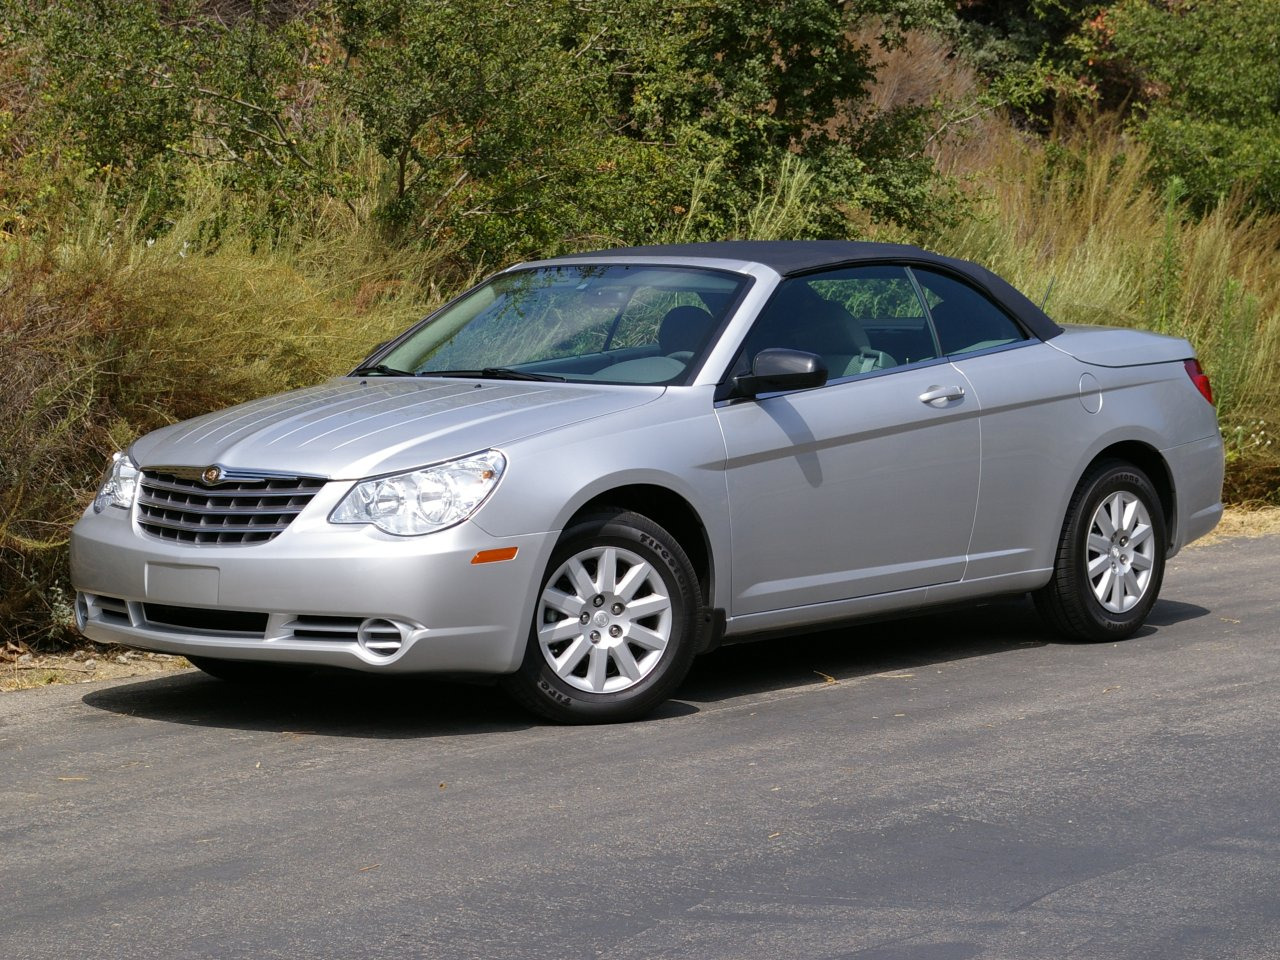 Chrysler Sebring #14